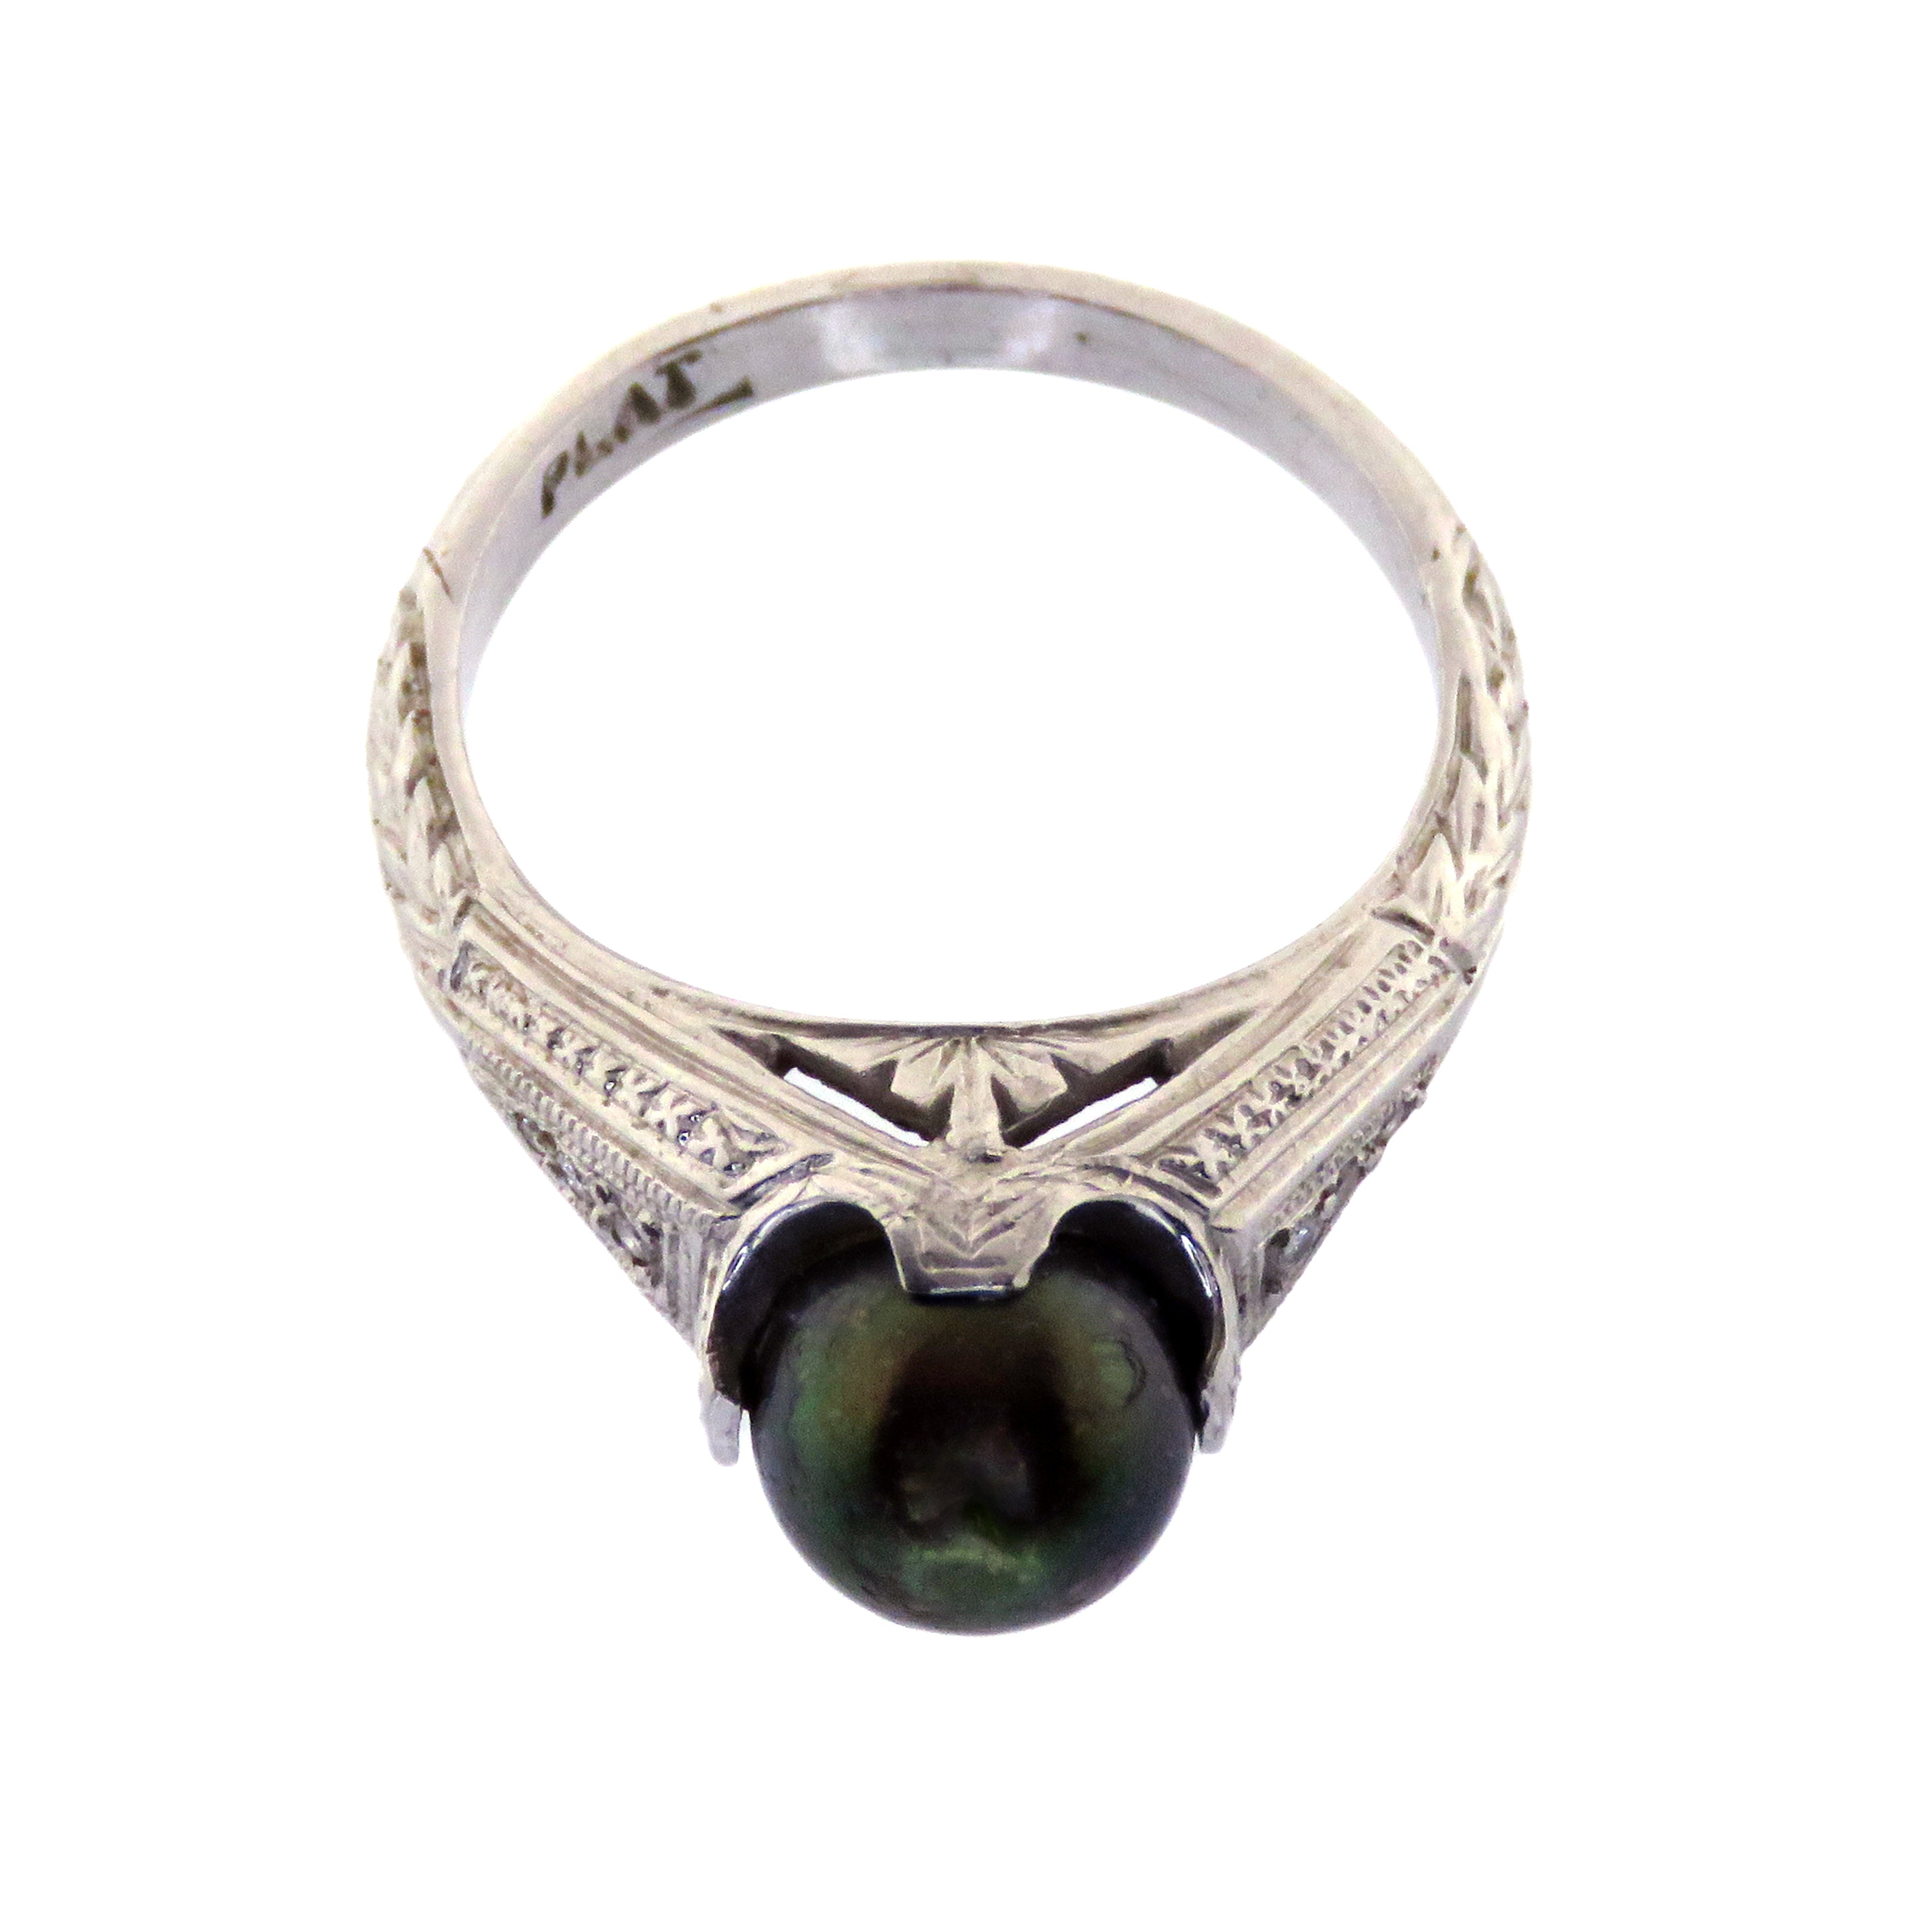 Platinum Art Deco Black Pearl Ring with Encrusted Diamonds